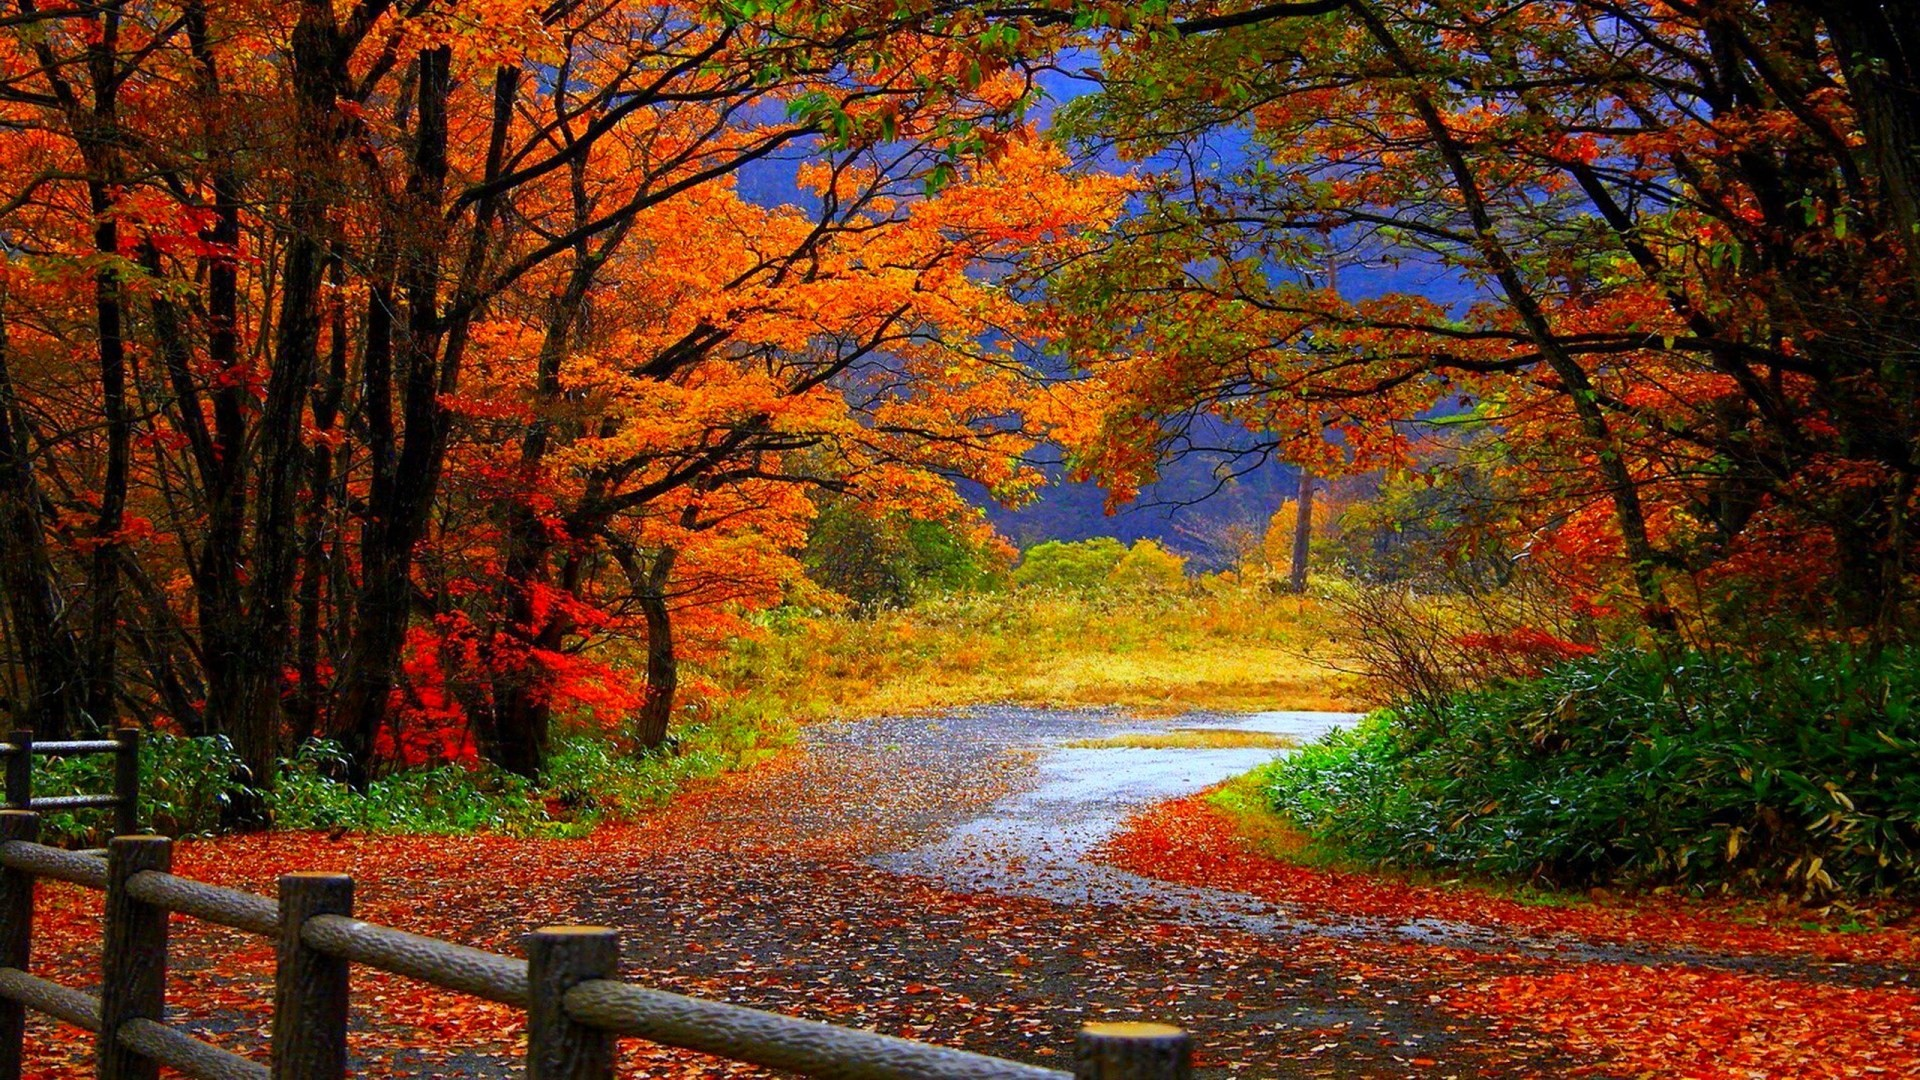 … Nice Hd Fall Wallpaper HD Wallpapers of Nature- Full HD 1080p Desktop  Backgrounds for PC